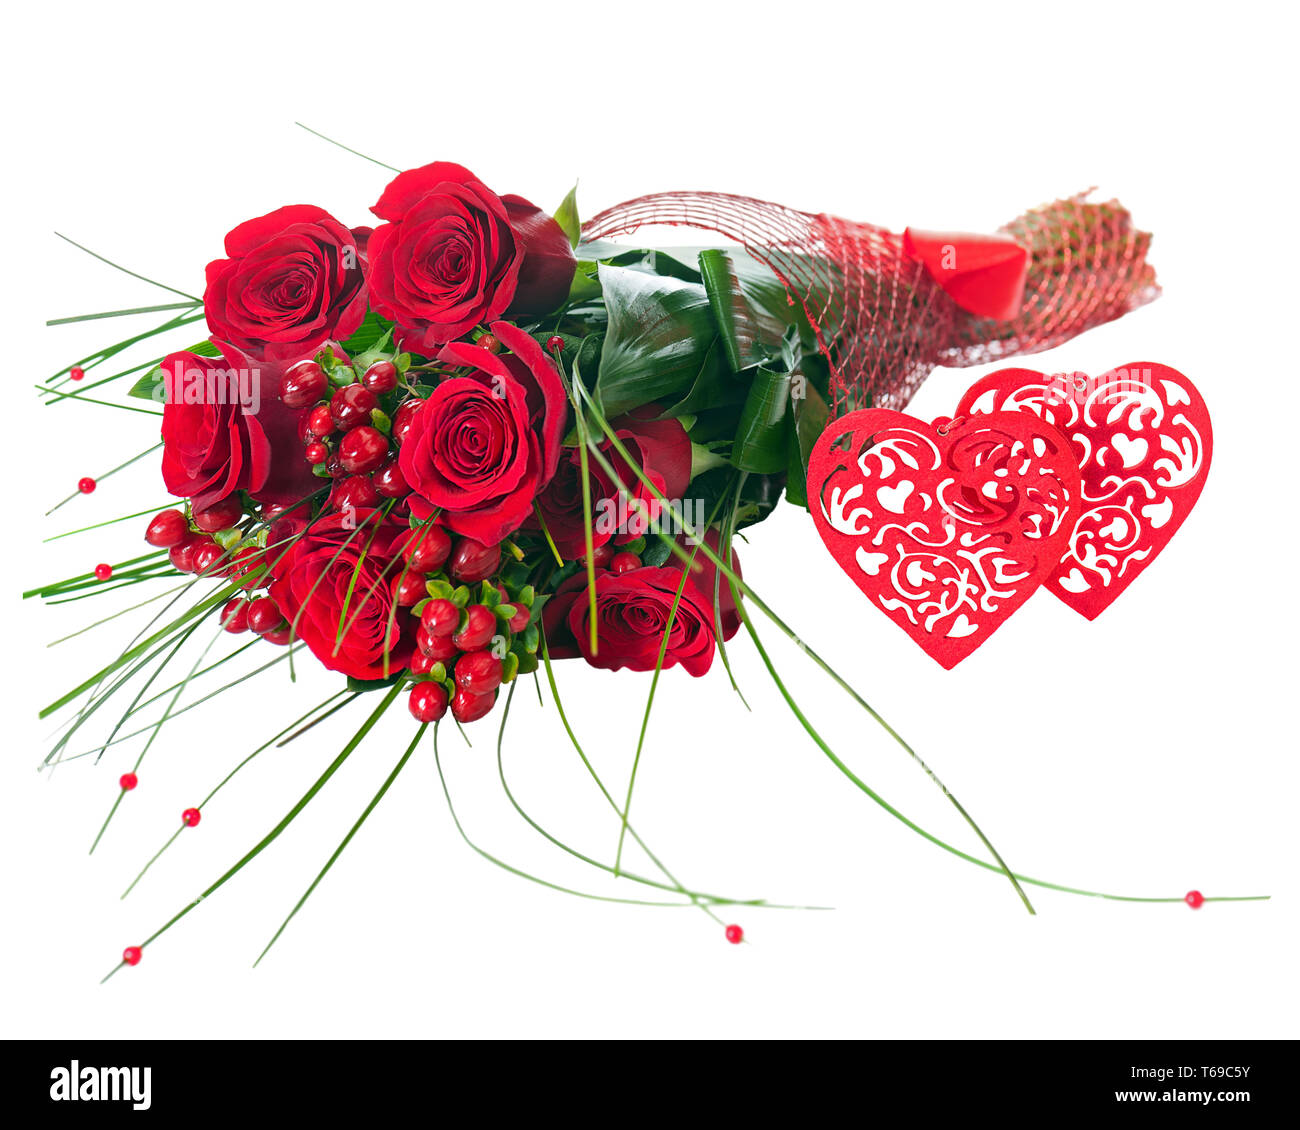 Colorful Flower Bouquet from Red Roses and Two Hea - Stock Image